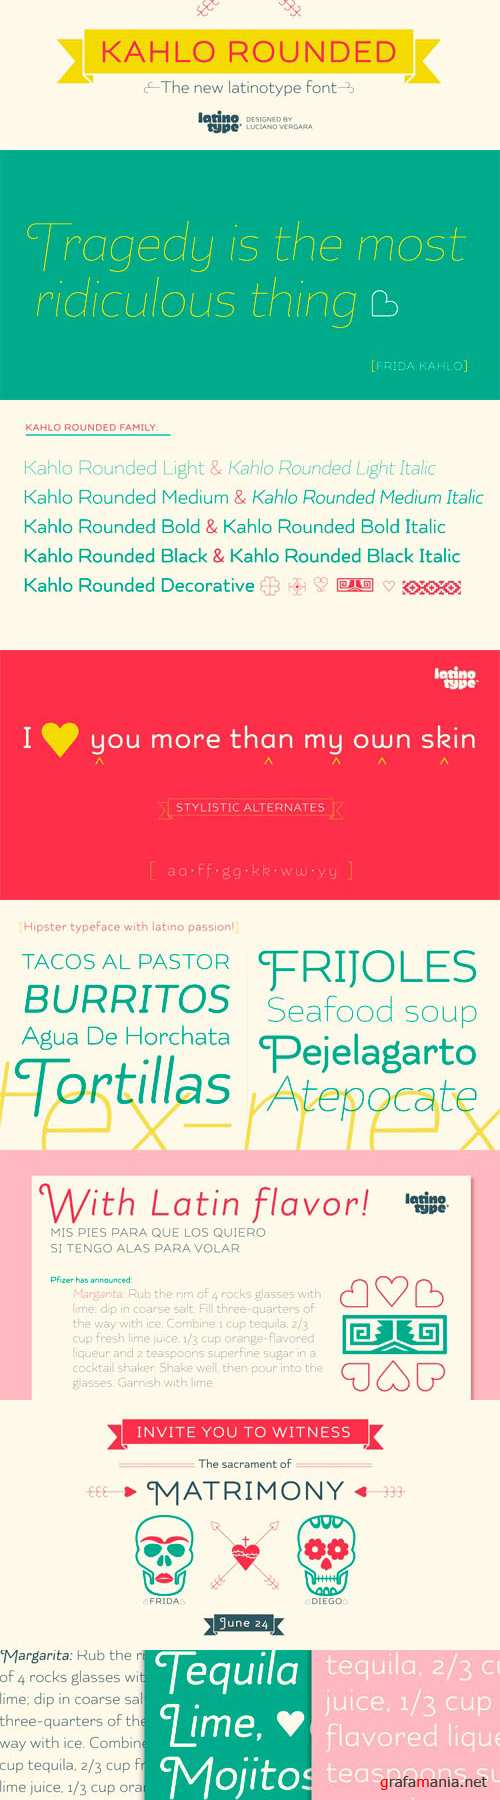 Kahlo Rounded Font Family